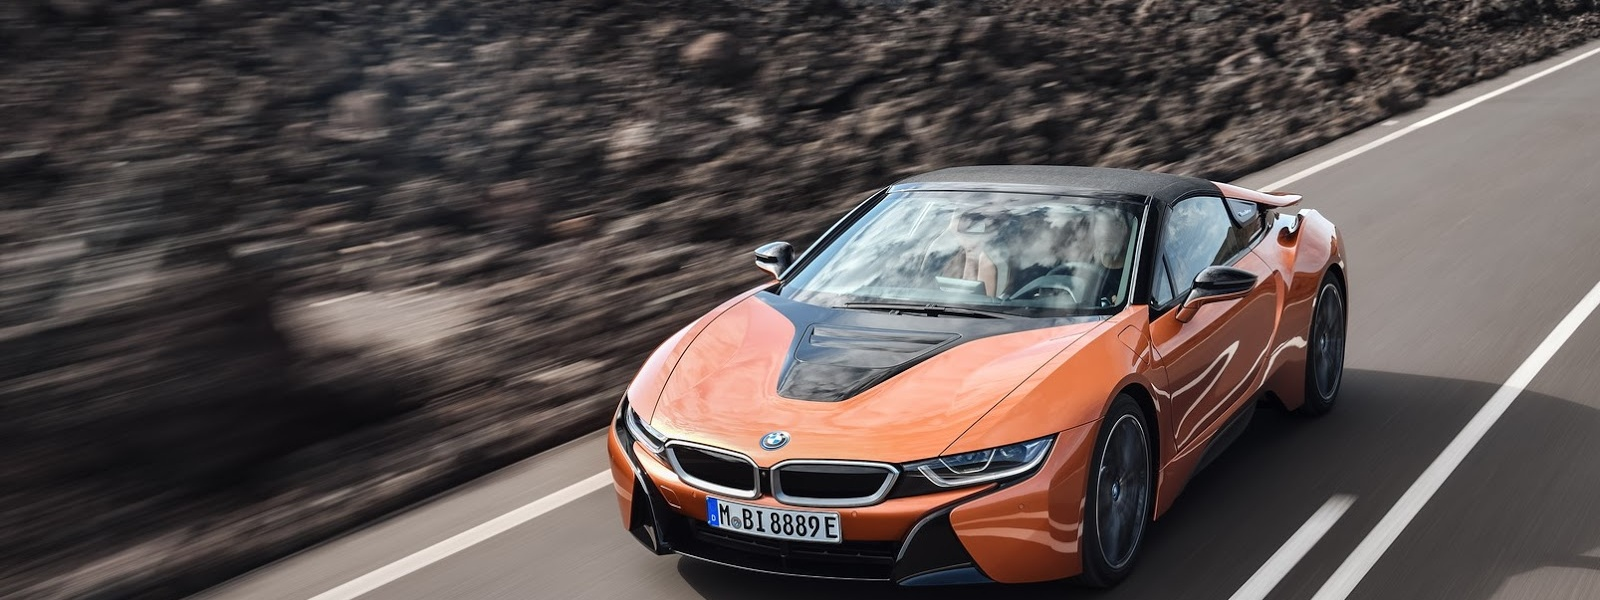 2019-BMW-i8-Roadster-Coupe-36.jpg